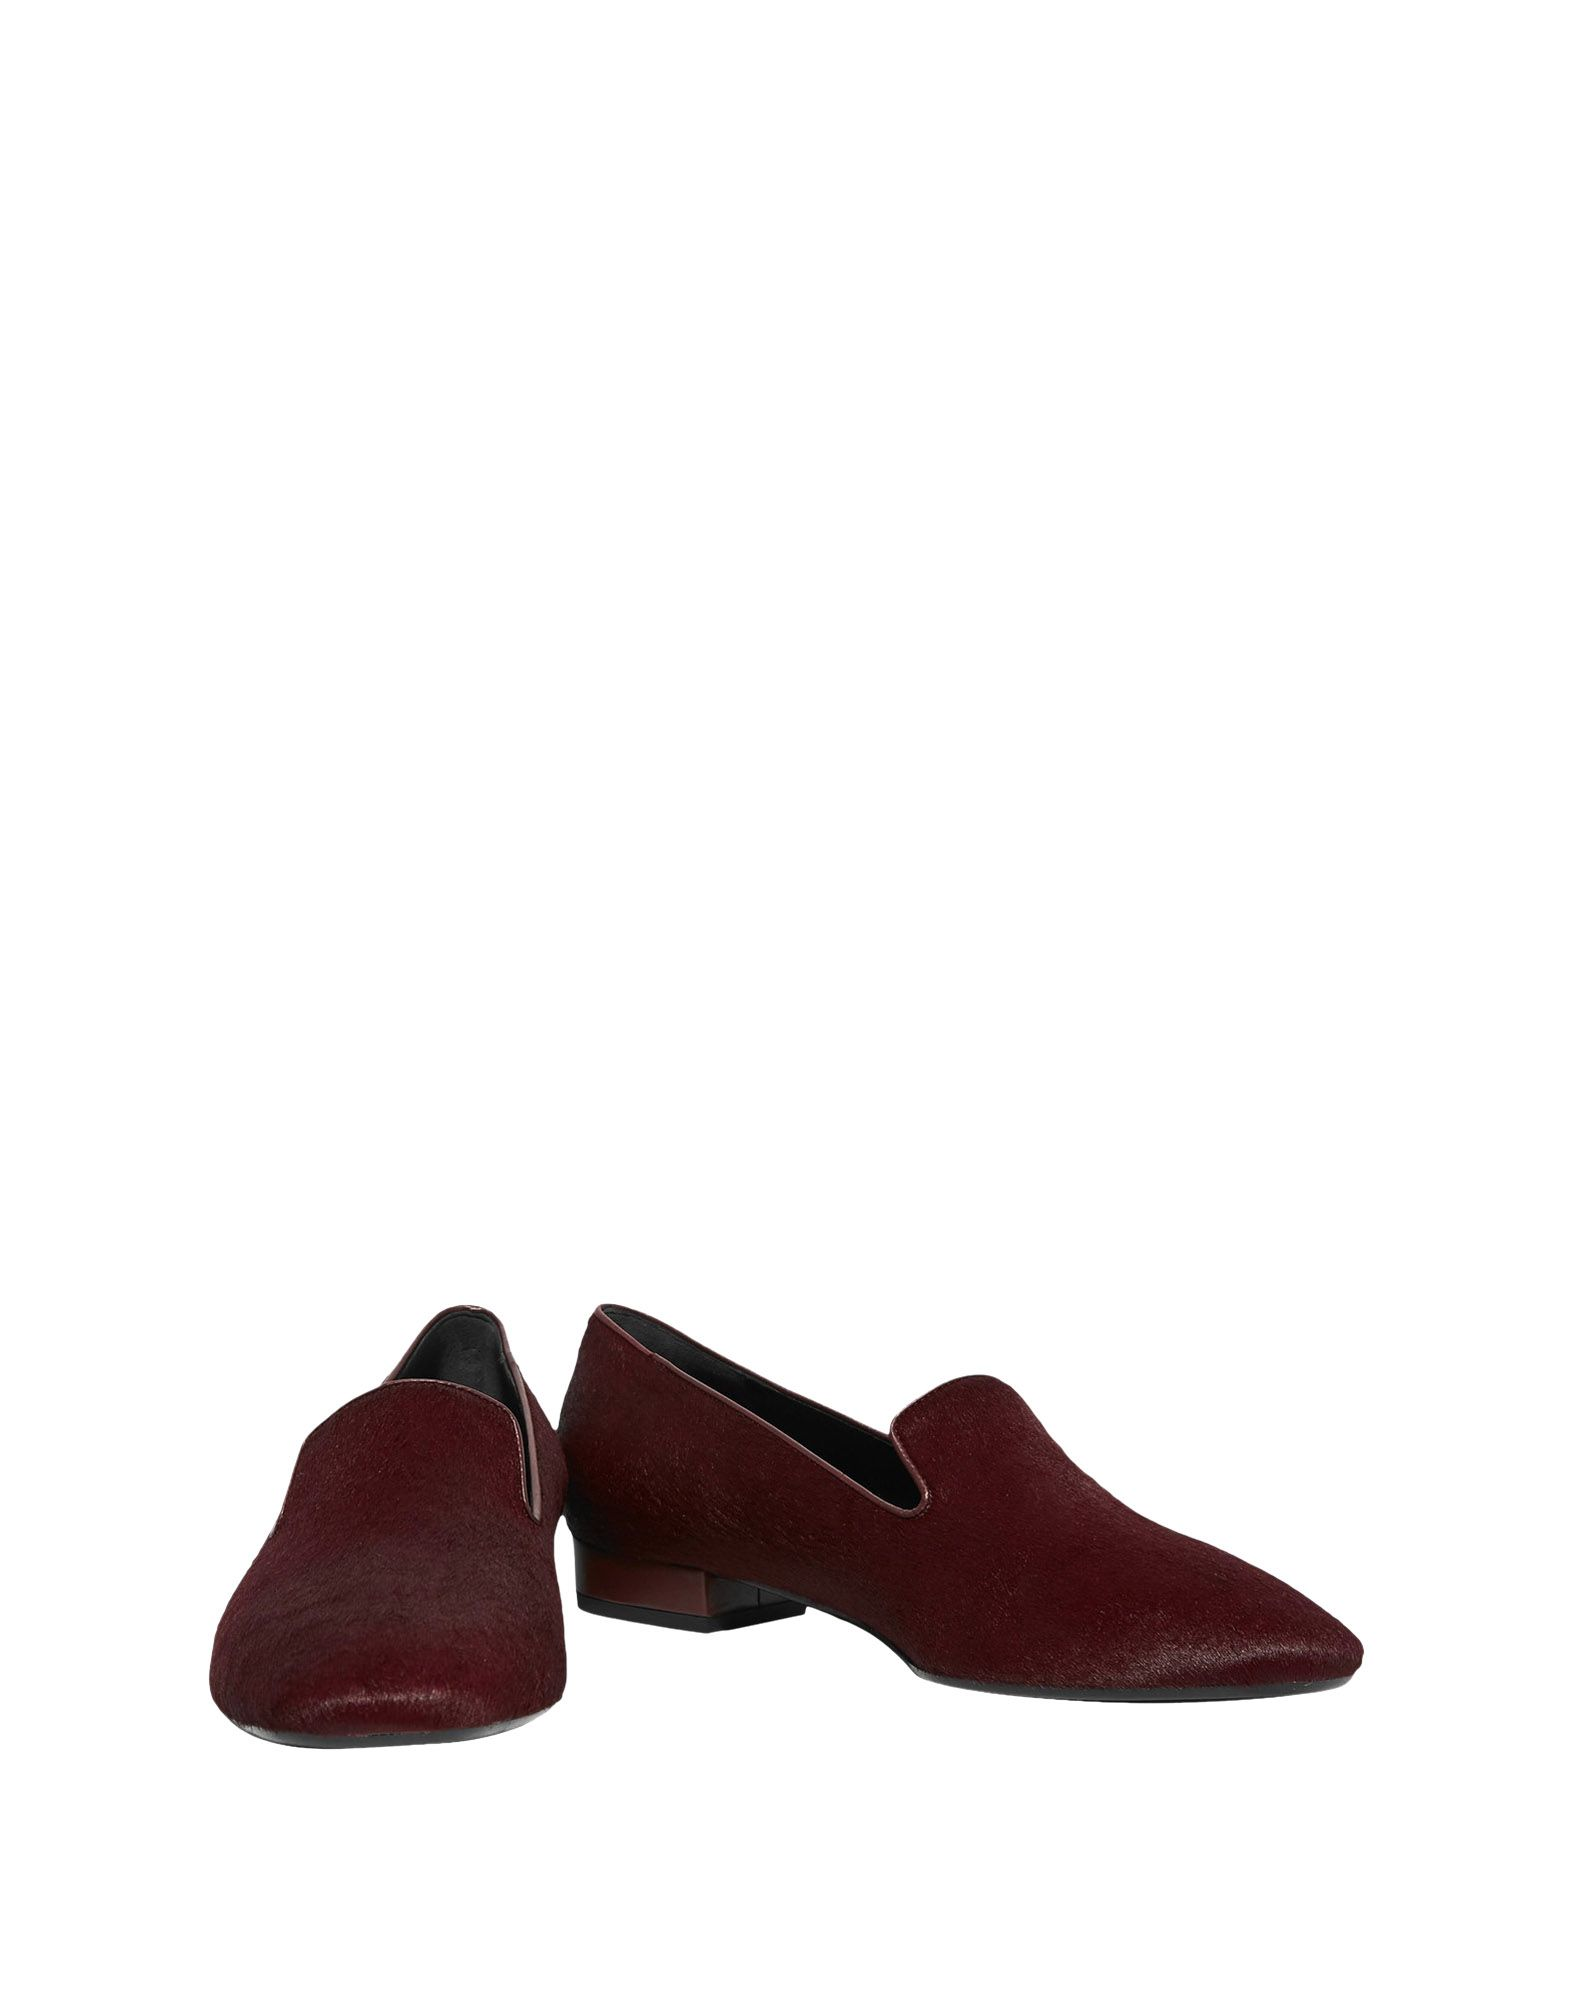 Loafers in Maroon